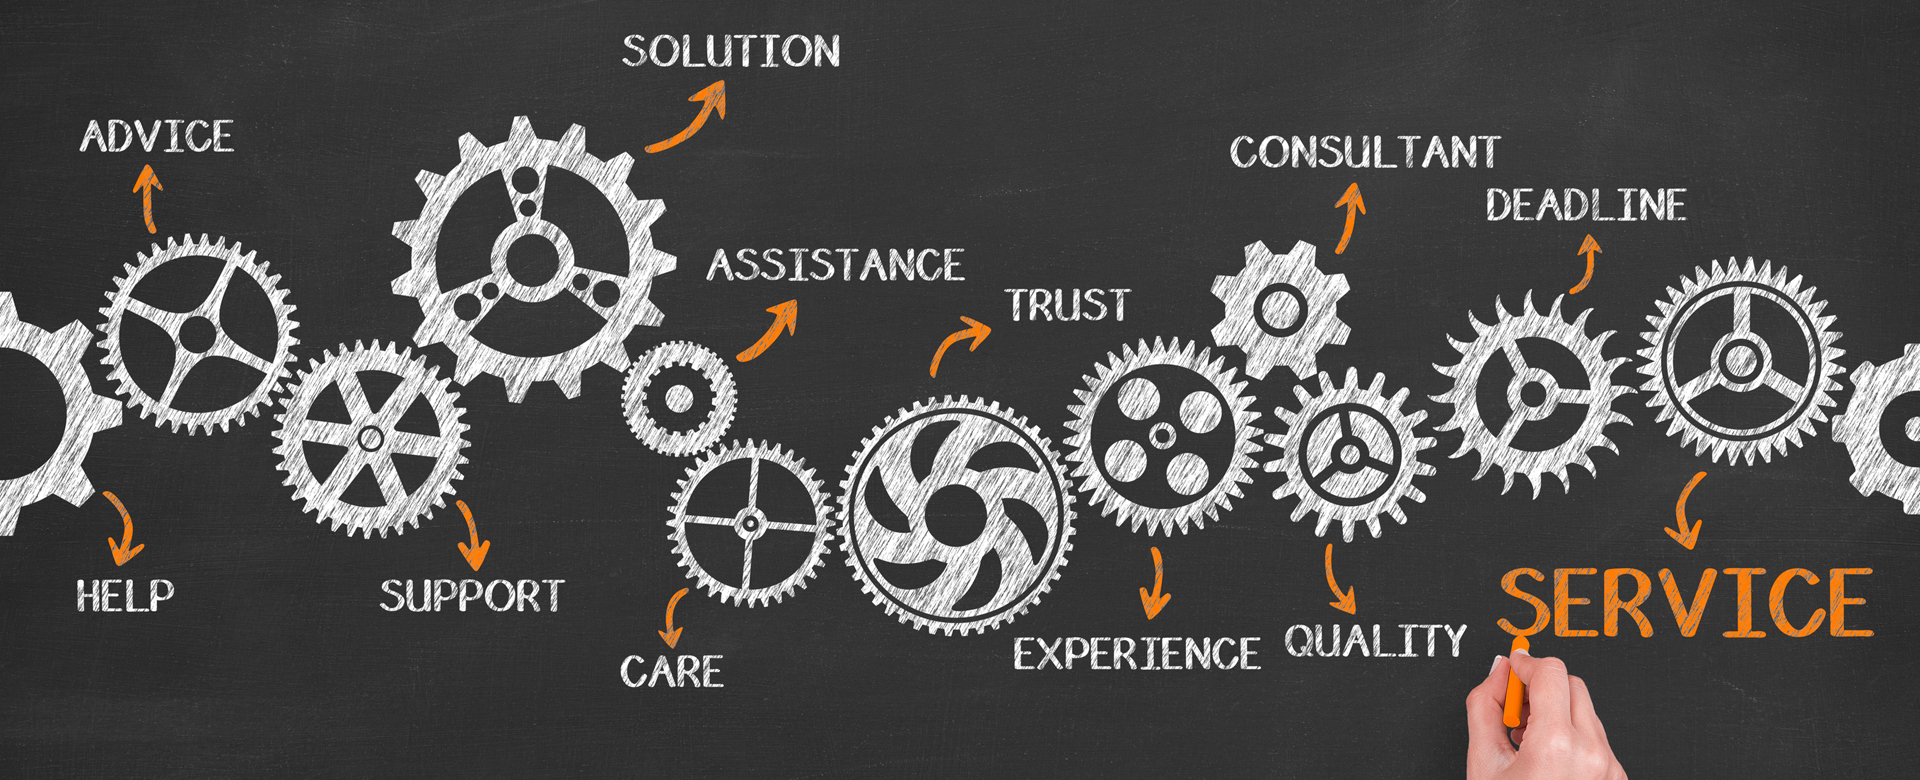 consulting-services-image